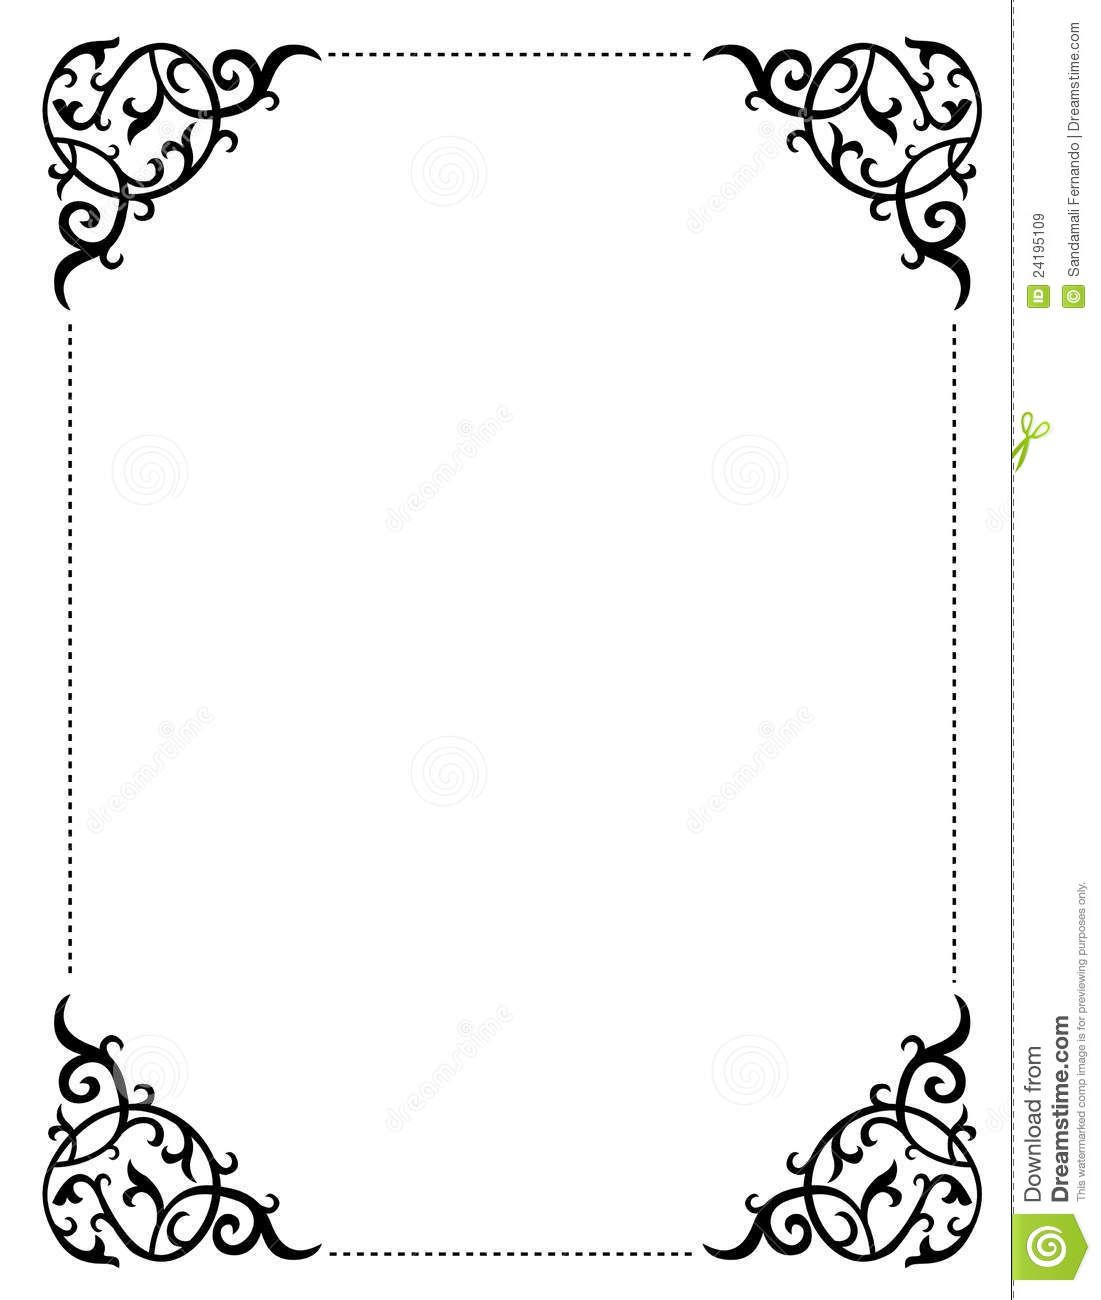 Free Printable Wedding Clip Art Borders And Backgrounds Invitation - Free Printable Halloween Stationery Borders